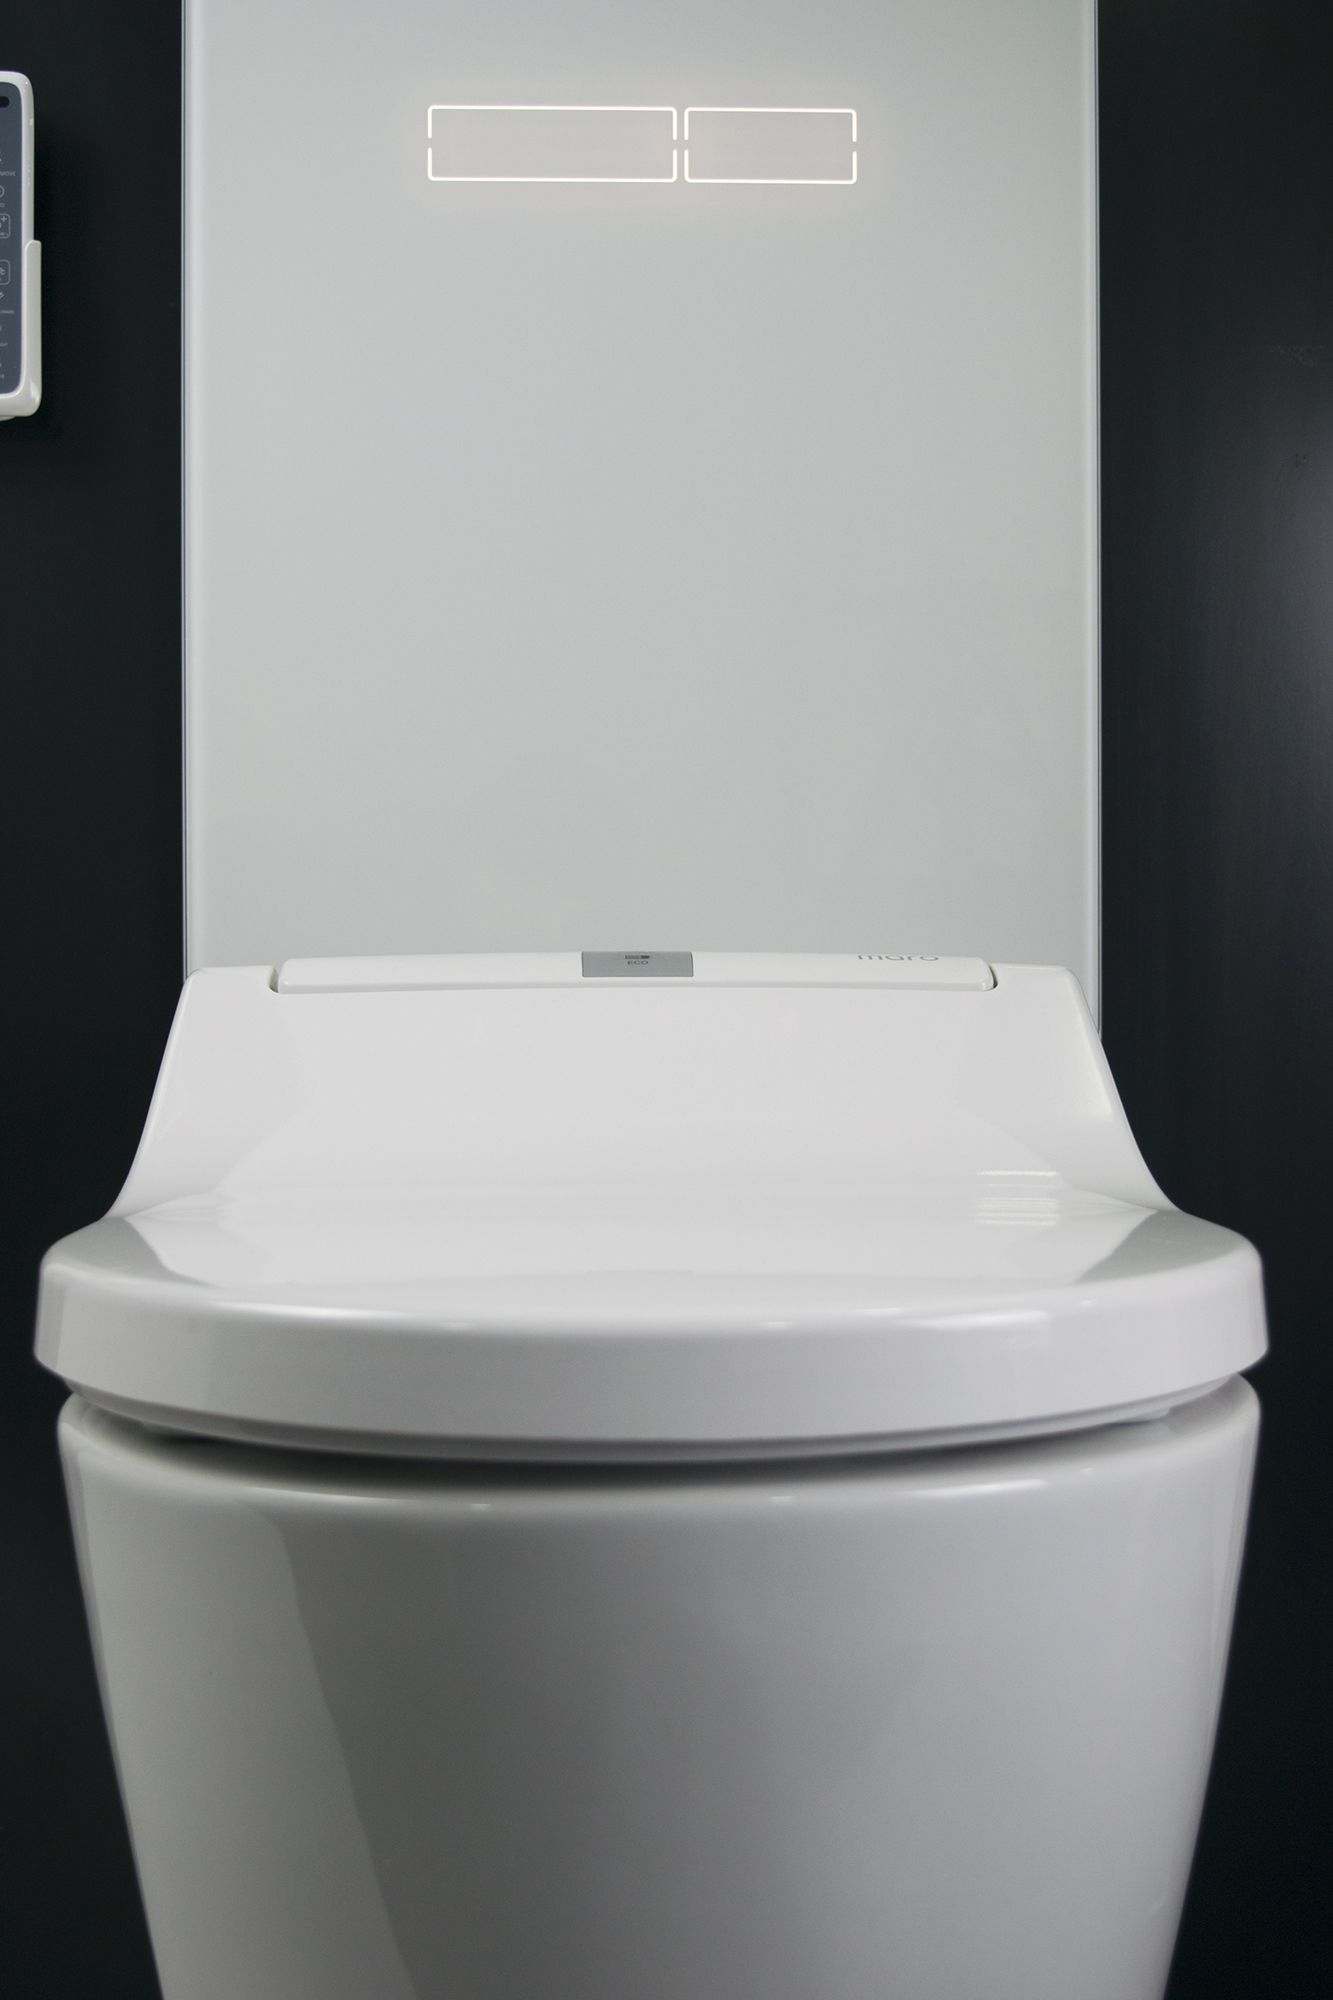 Wc Aufsatz Maro D Italia Di600 Is A Perfect Fit With The Toto Rp Cw552y The